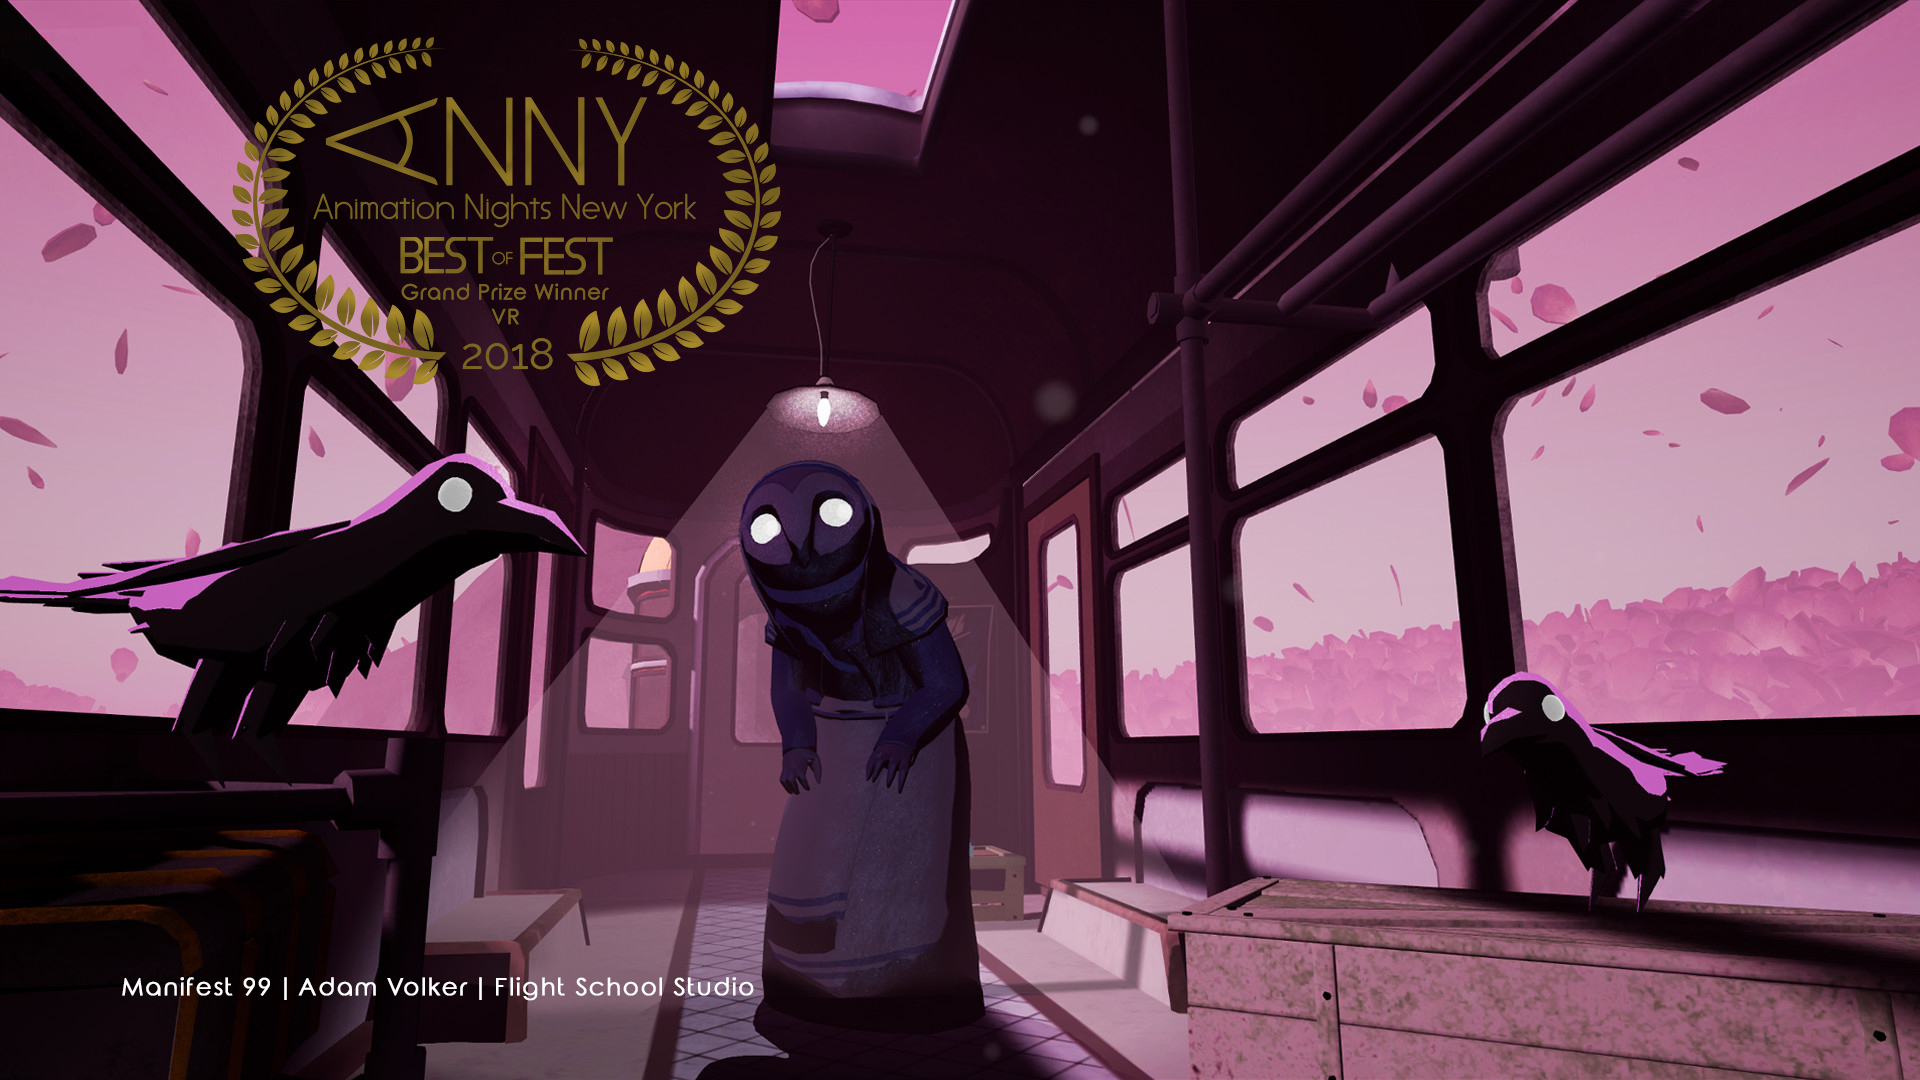 2304900bd6fc 2018 ANNY Best of Fest was our Best Fest Yet! – Animation Nights New ...